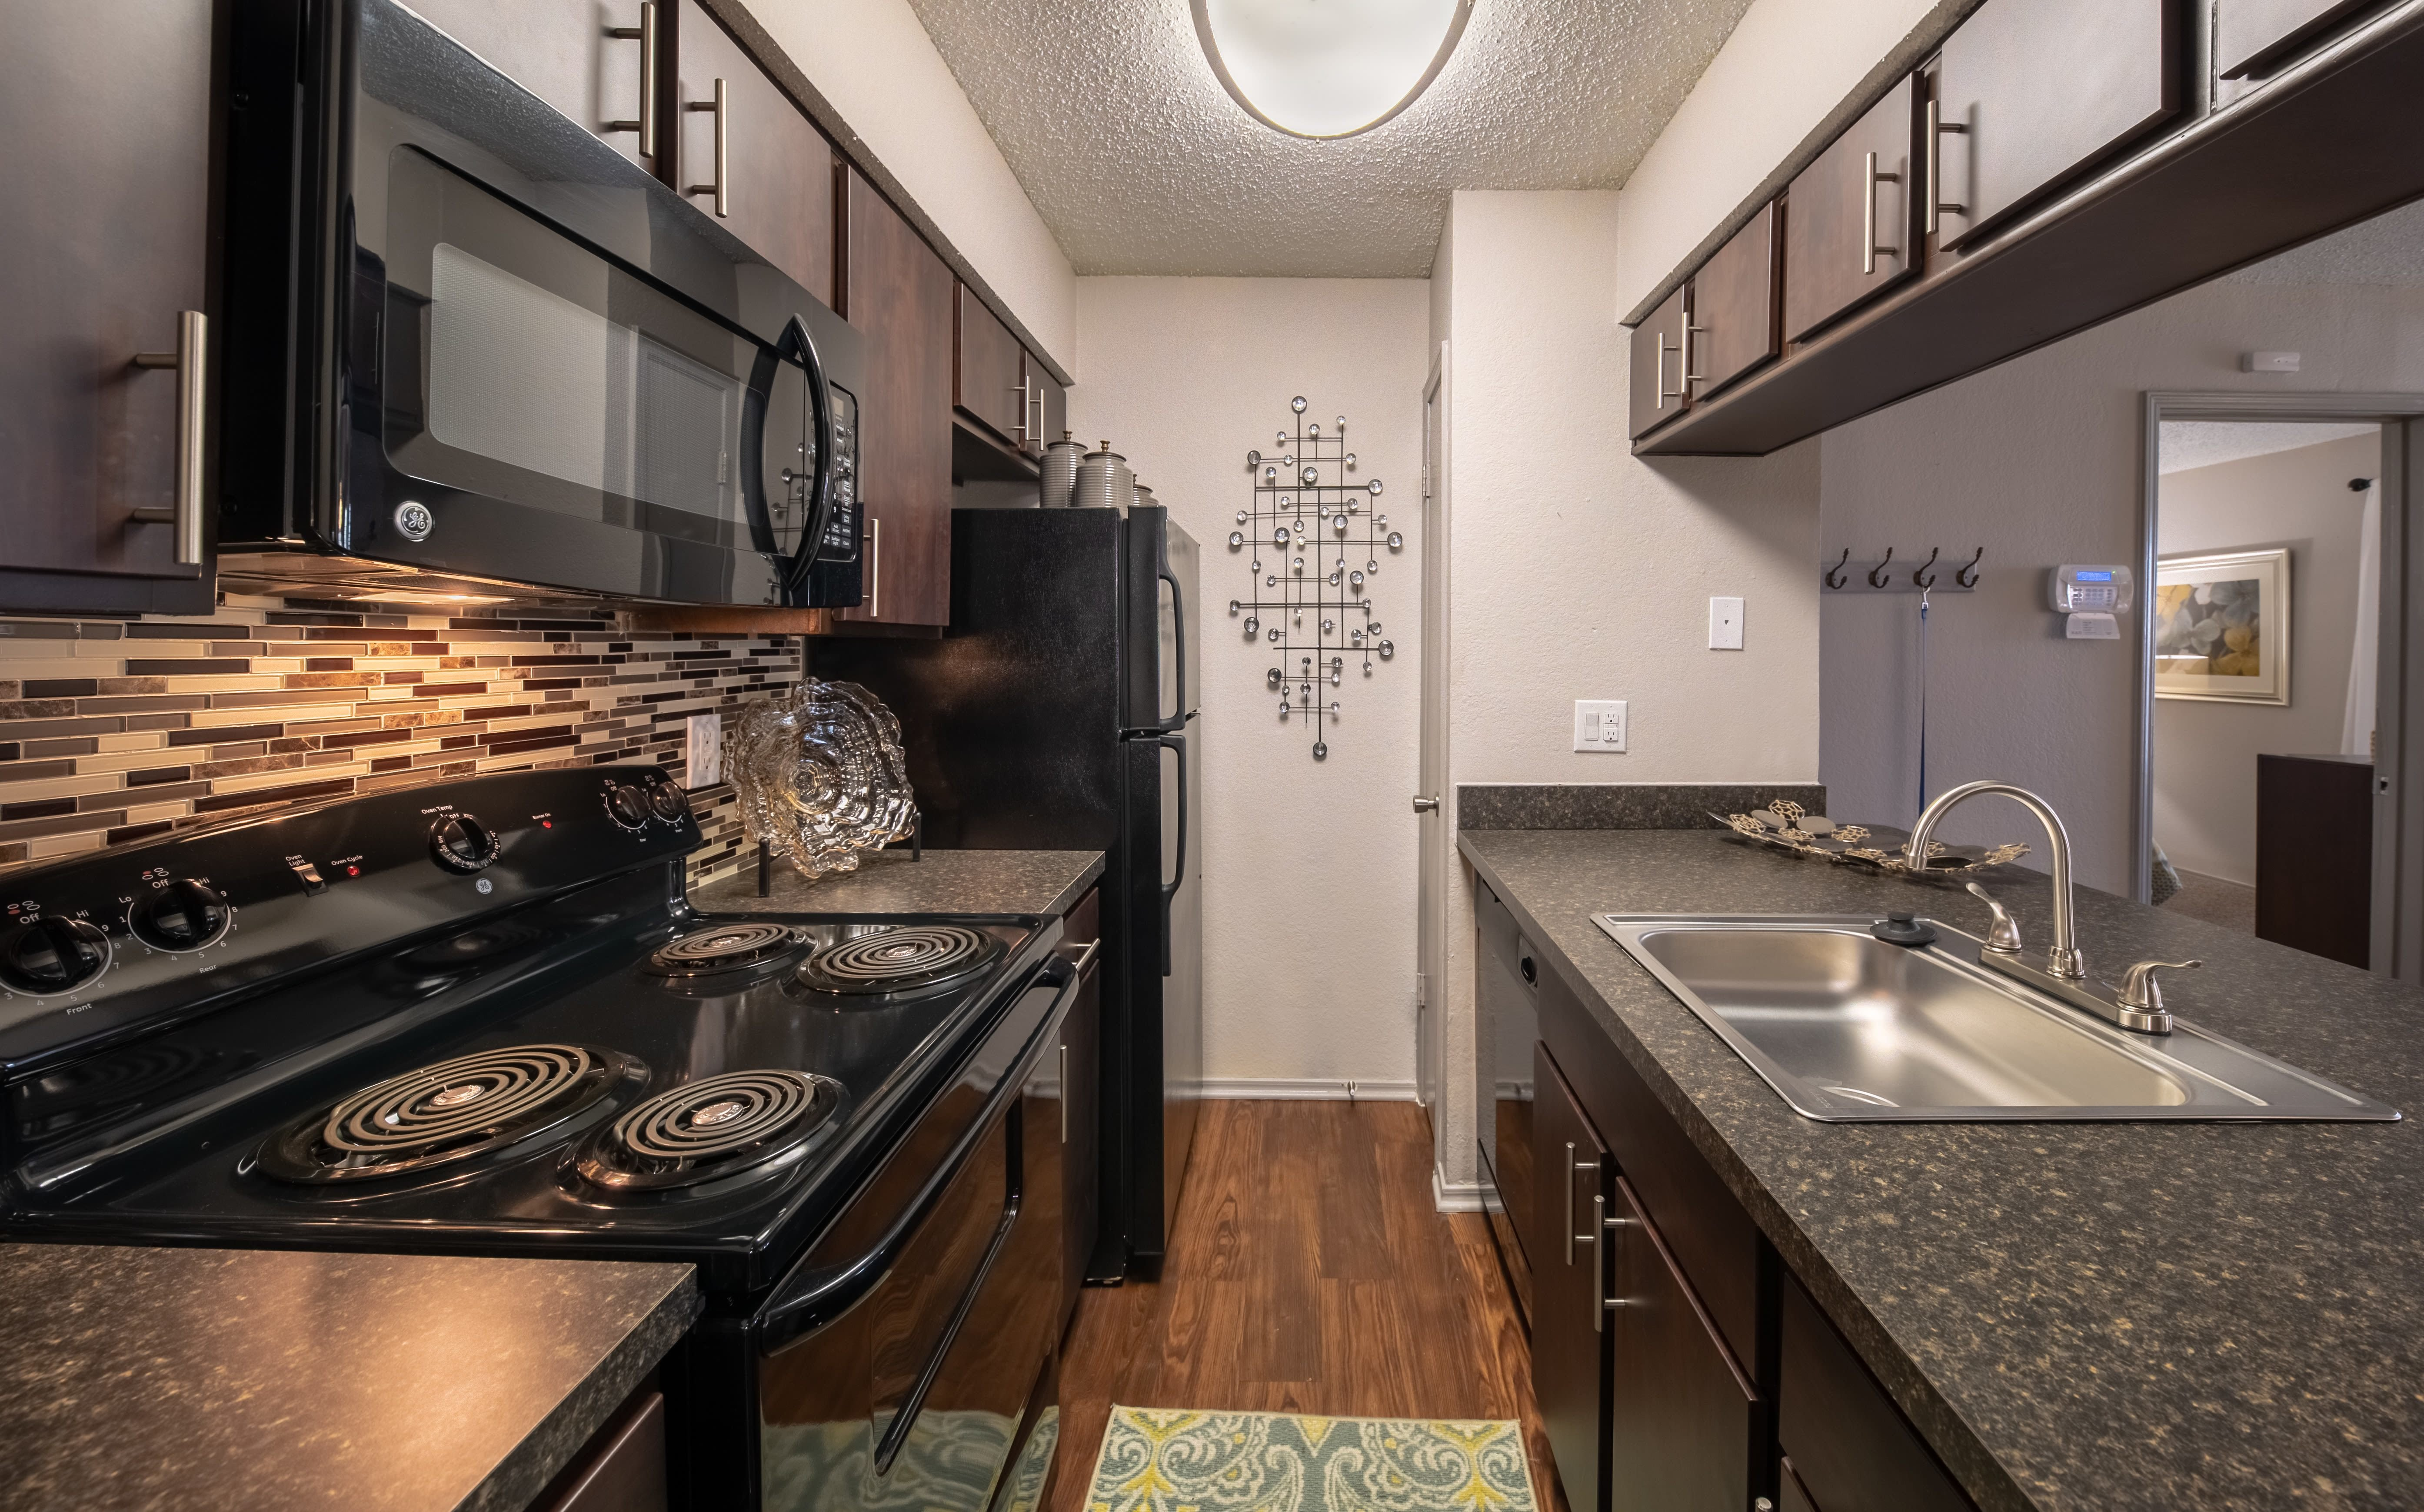 Best Affordable 1 2 Bedroom Apartments In Irving Tx With Pictures